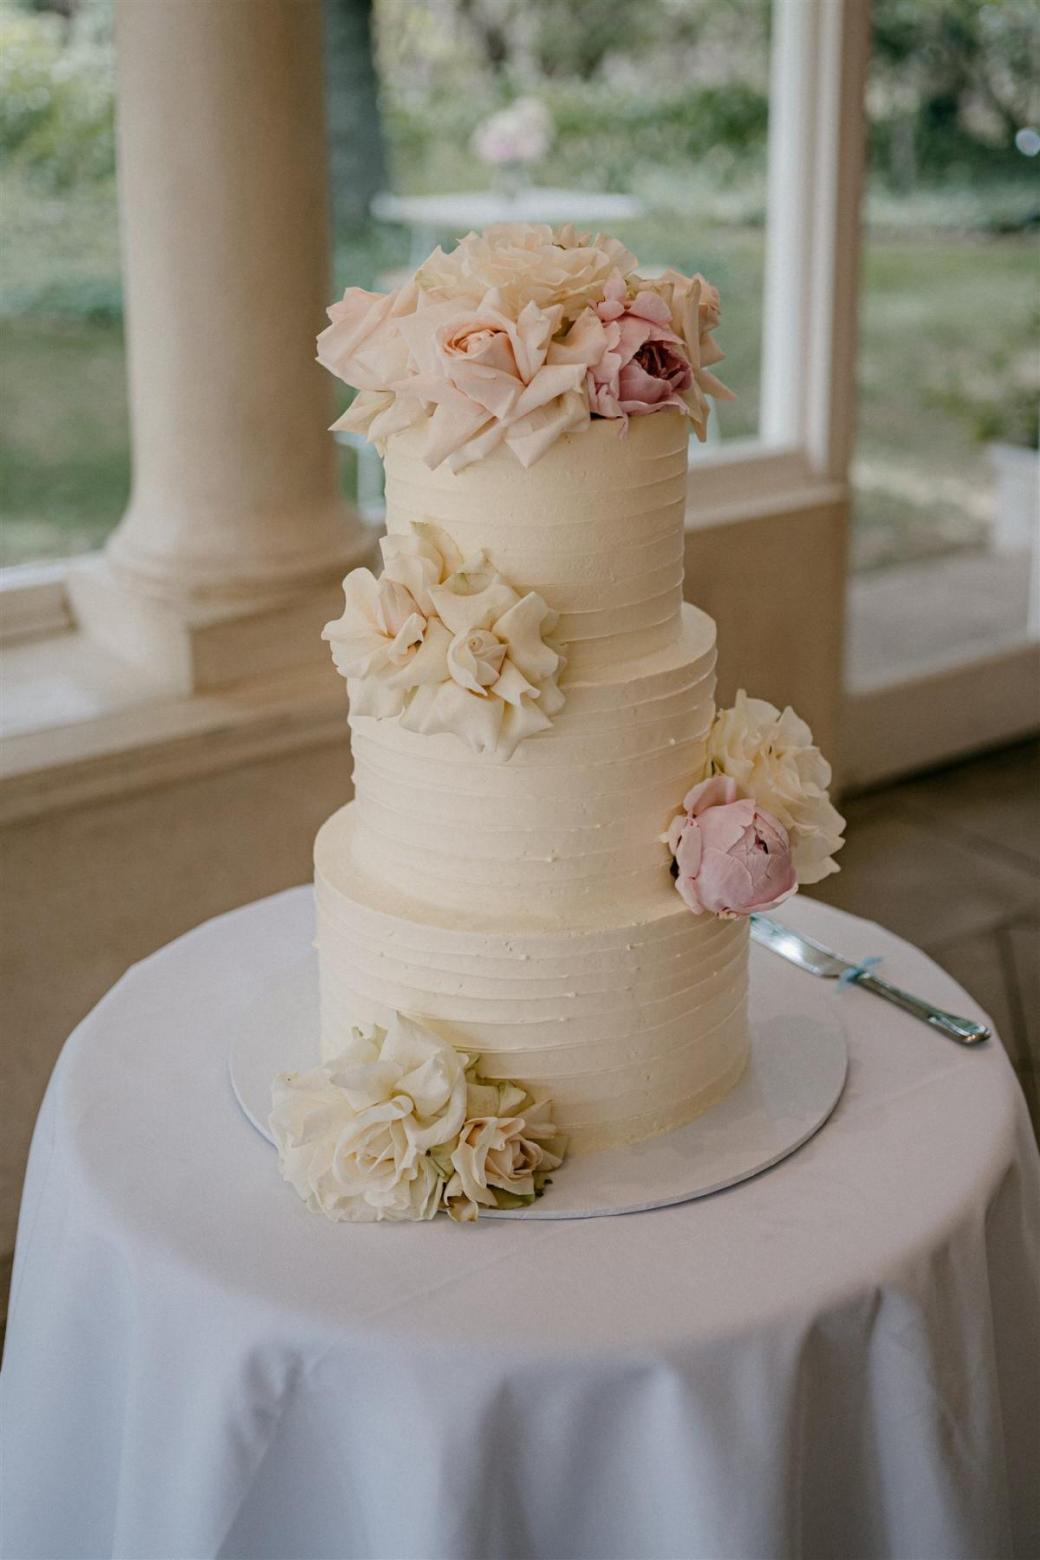 KWH bride Ashleigh's cream wedding cake, featuring a rose floral detail.